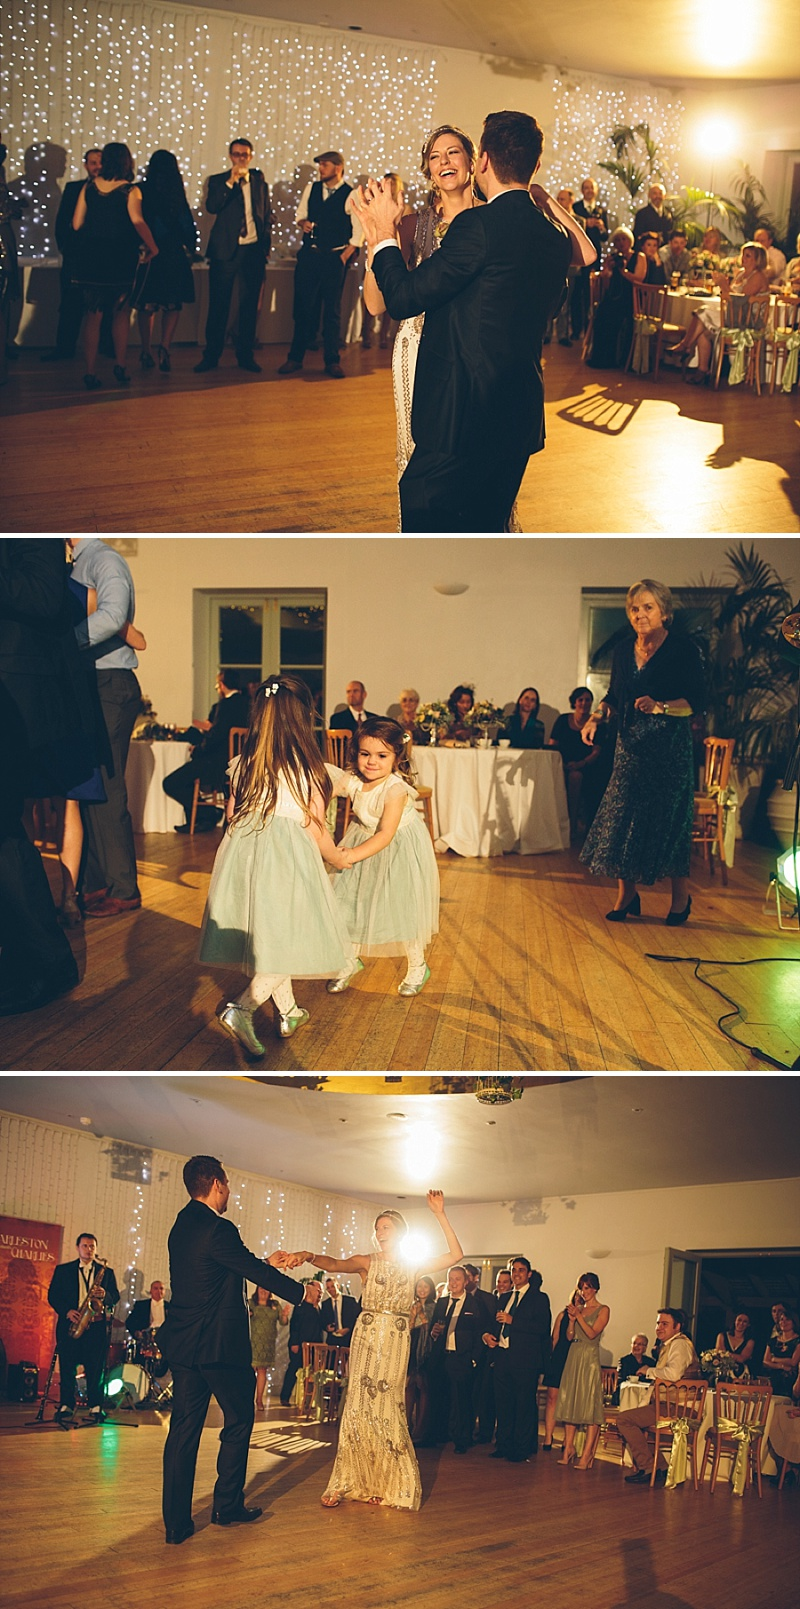 Art Deco and 1920s Inspired Wedding At The Matara Centre Gloucestershire With Bride In Joy By Jenny Packham and Bridesmaids in No 1 by Jenny Packham At Debenhams With Vintage Details and Speakeasy Themed Cocktails 11